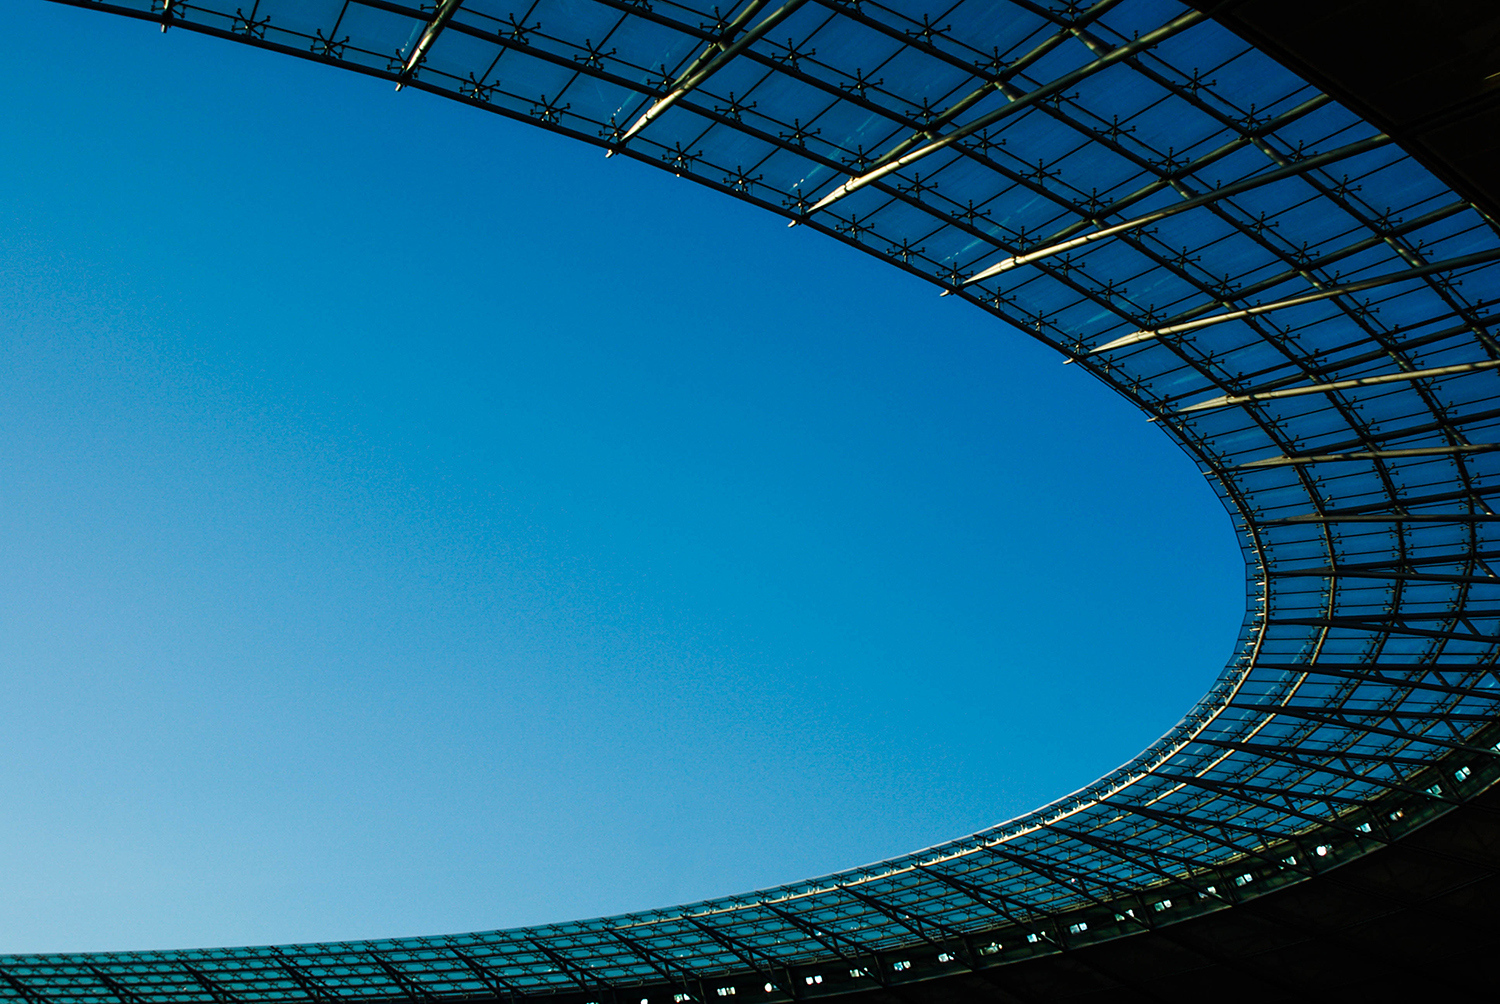 <p>Berlin's Olympic Stadium was roofless when it hosted the 1936 Games, but during renovations in 2004 a seemingly floating roof was added to cover all 74,475 seats in the stadium (which, despite its age, still has Germany's highest all-seater capacity). The roof conceals clever lighting that creates no discernible shadows on the pitch.</p>